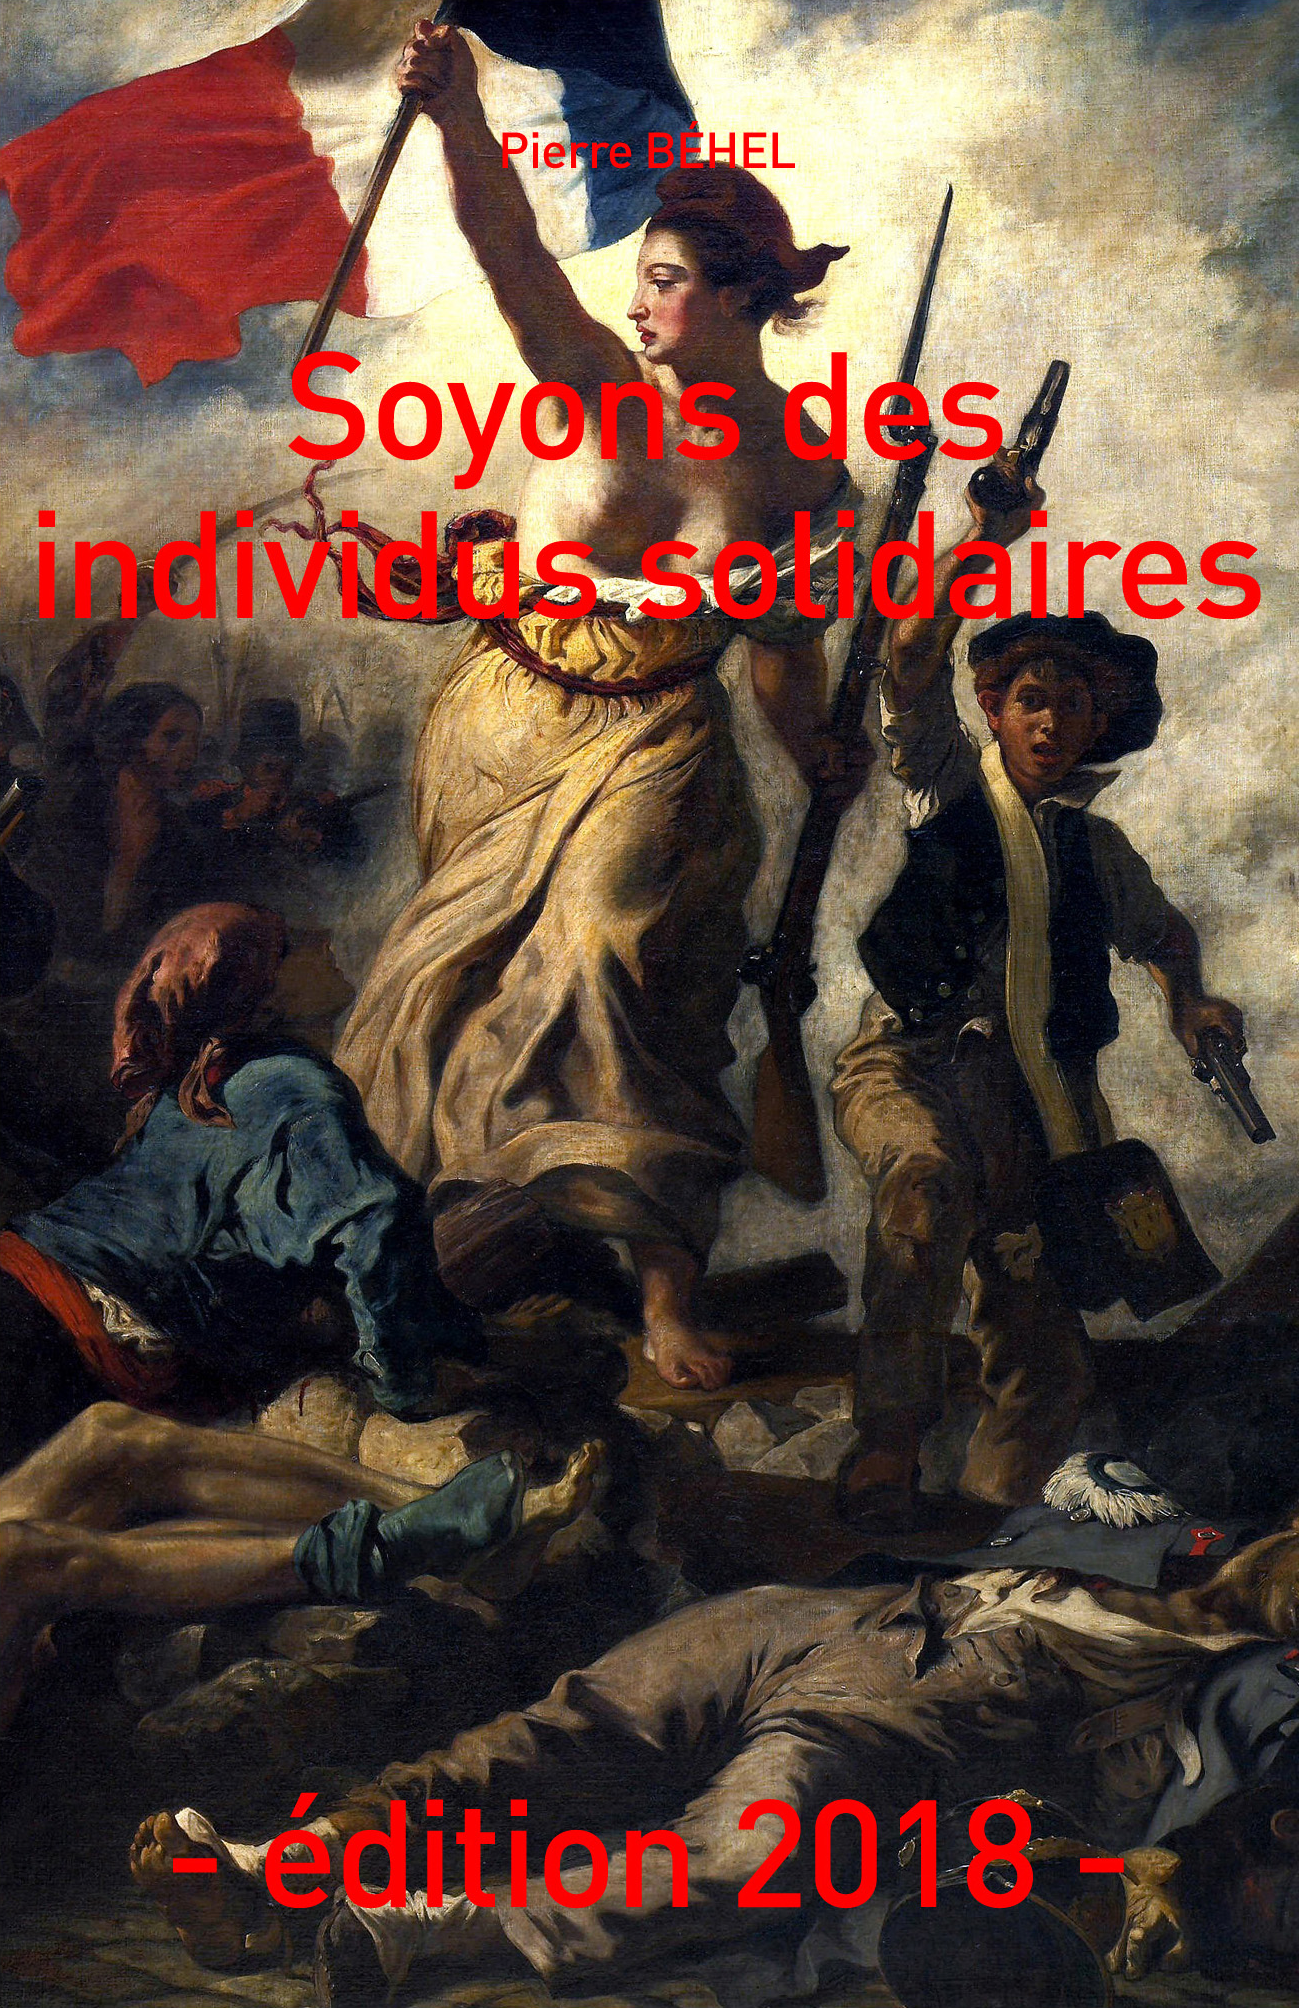 Soyons des individus solidaires - 2018